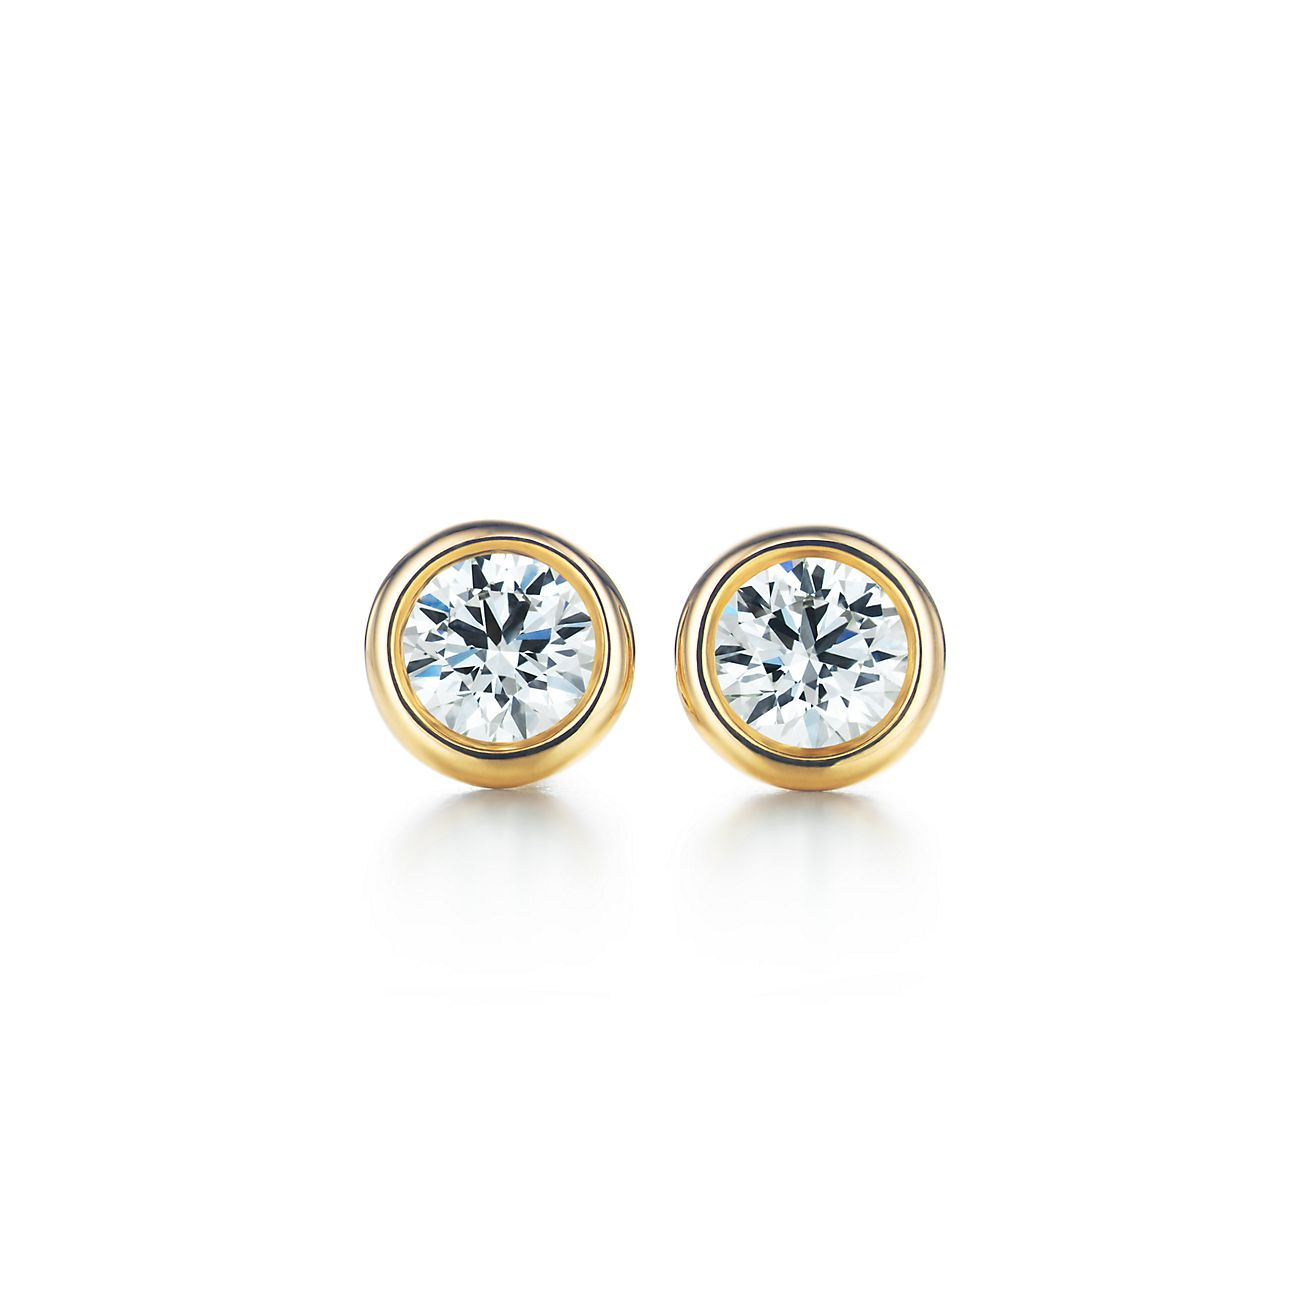 Elsa Peretti Diamonds By The Yard Earrings